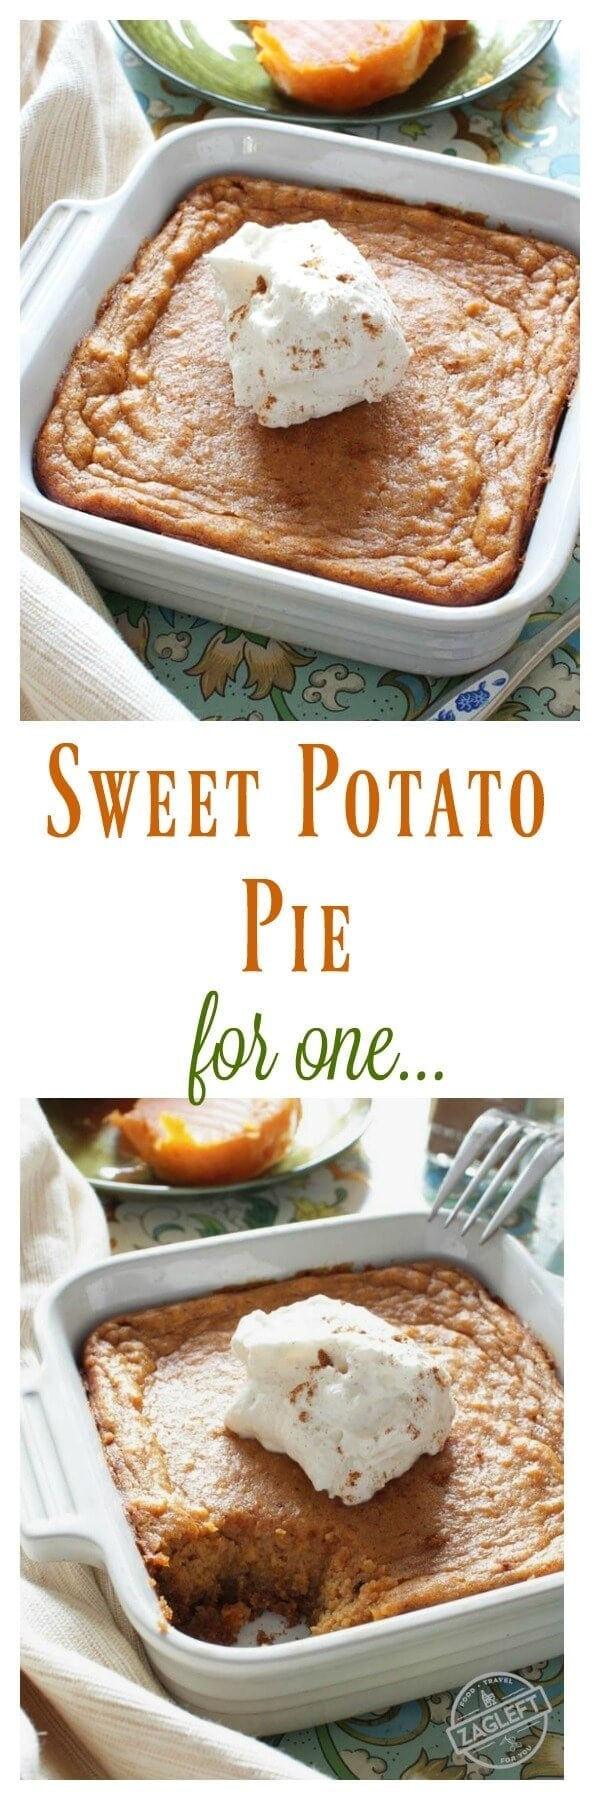 Sweet Potato Pie For One – This popular Southern dessert starts with a buttery graham cracker crust and is filled with perfectly spiced sweet potato custard. Top this tasty pie with a spoonful of maple whipped cream and you've got an amazing single serving dessert. | onedishkitchen.com